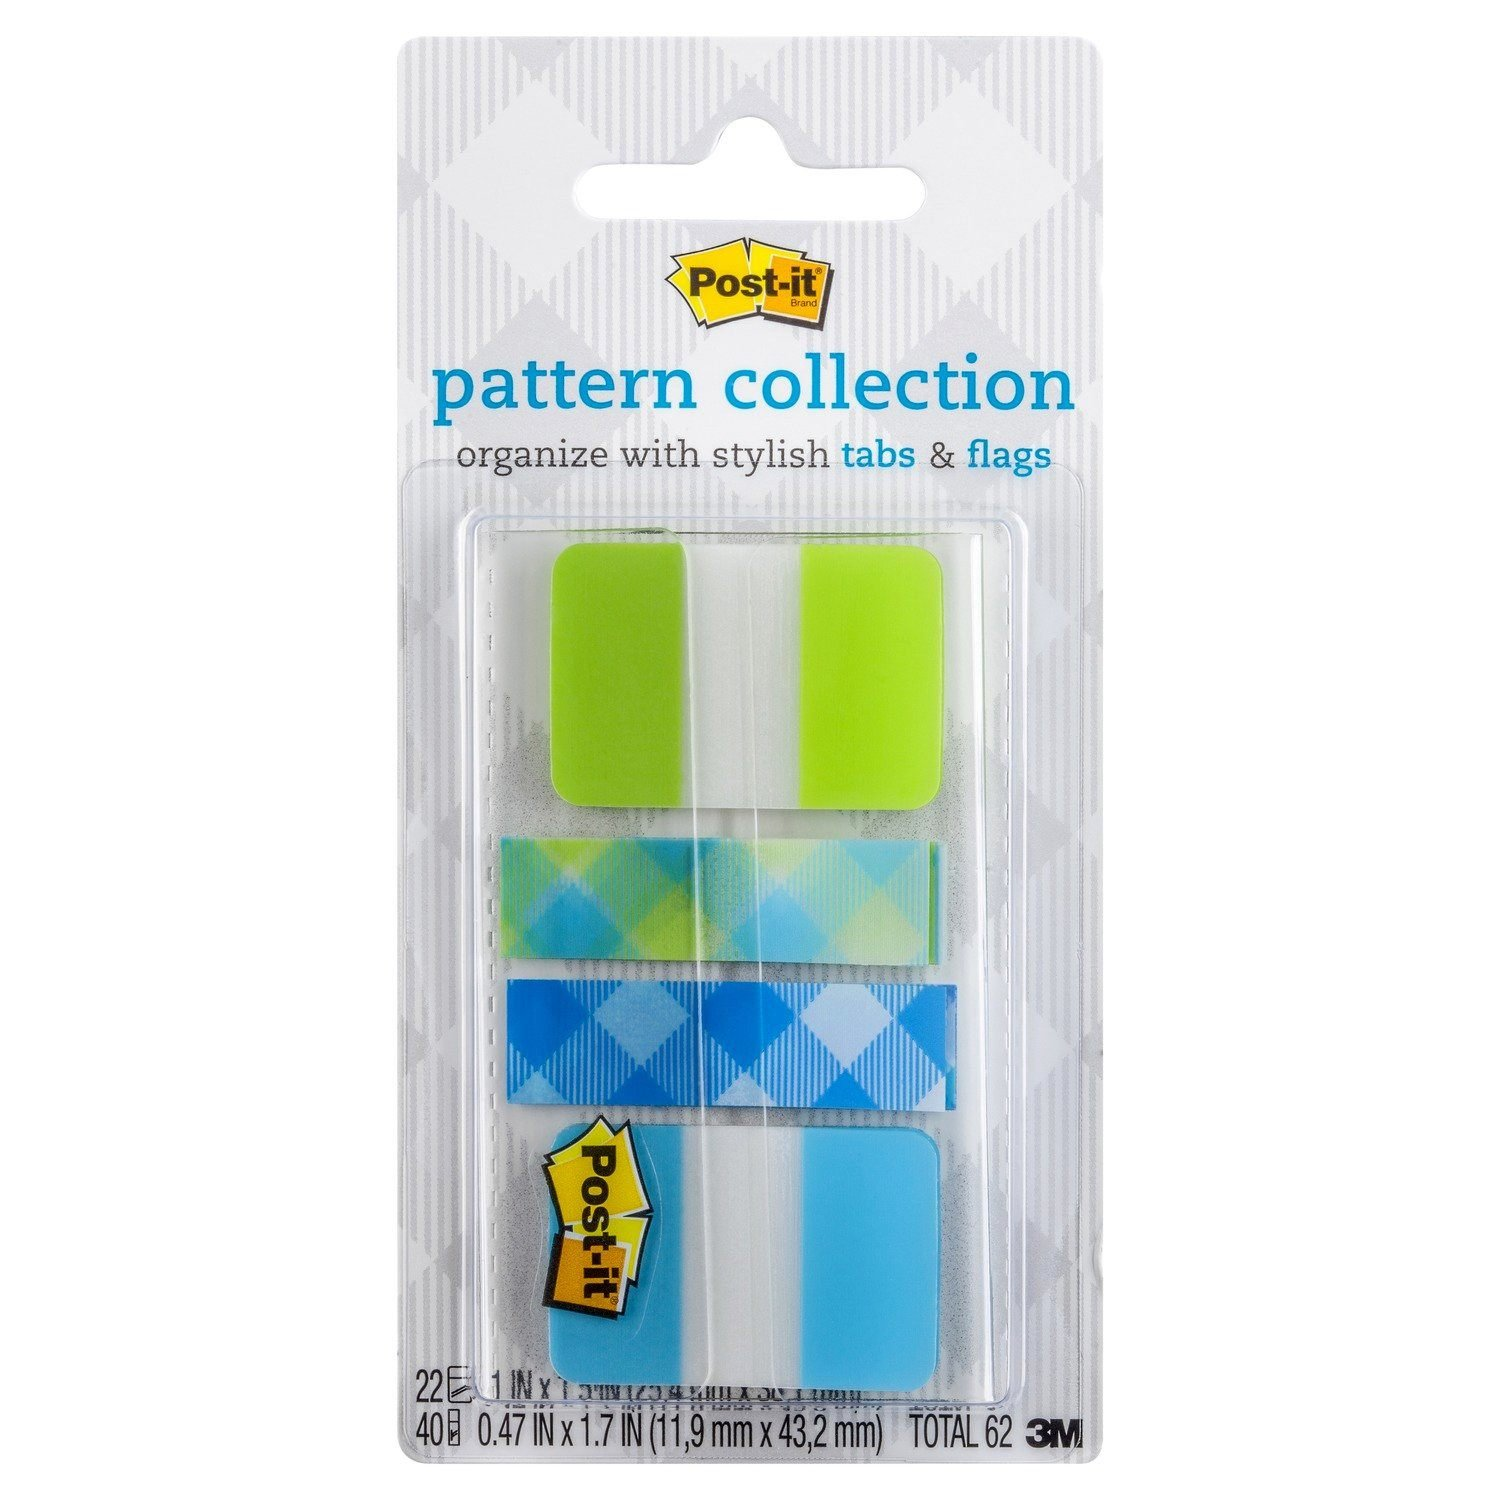 22 Tabs//Color Removes Cleanly 686L-GBR 1 in Durable Blue 66 Tabs//On-The-Go Dispenser, Lined Sticks Securely Repositionable Green Red Writable Post-it Tabs